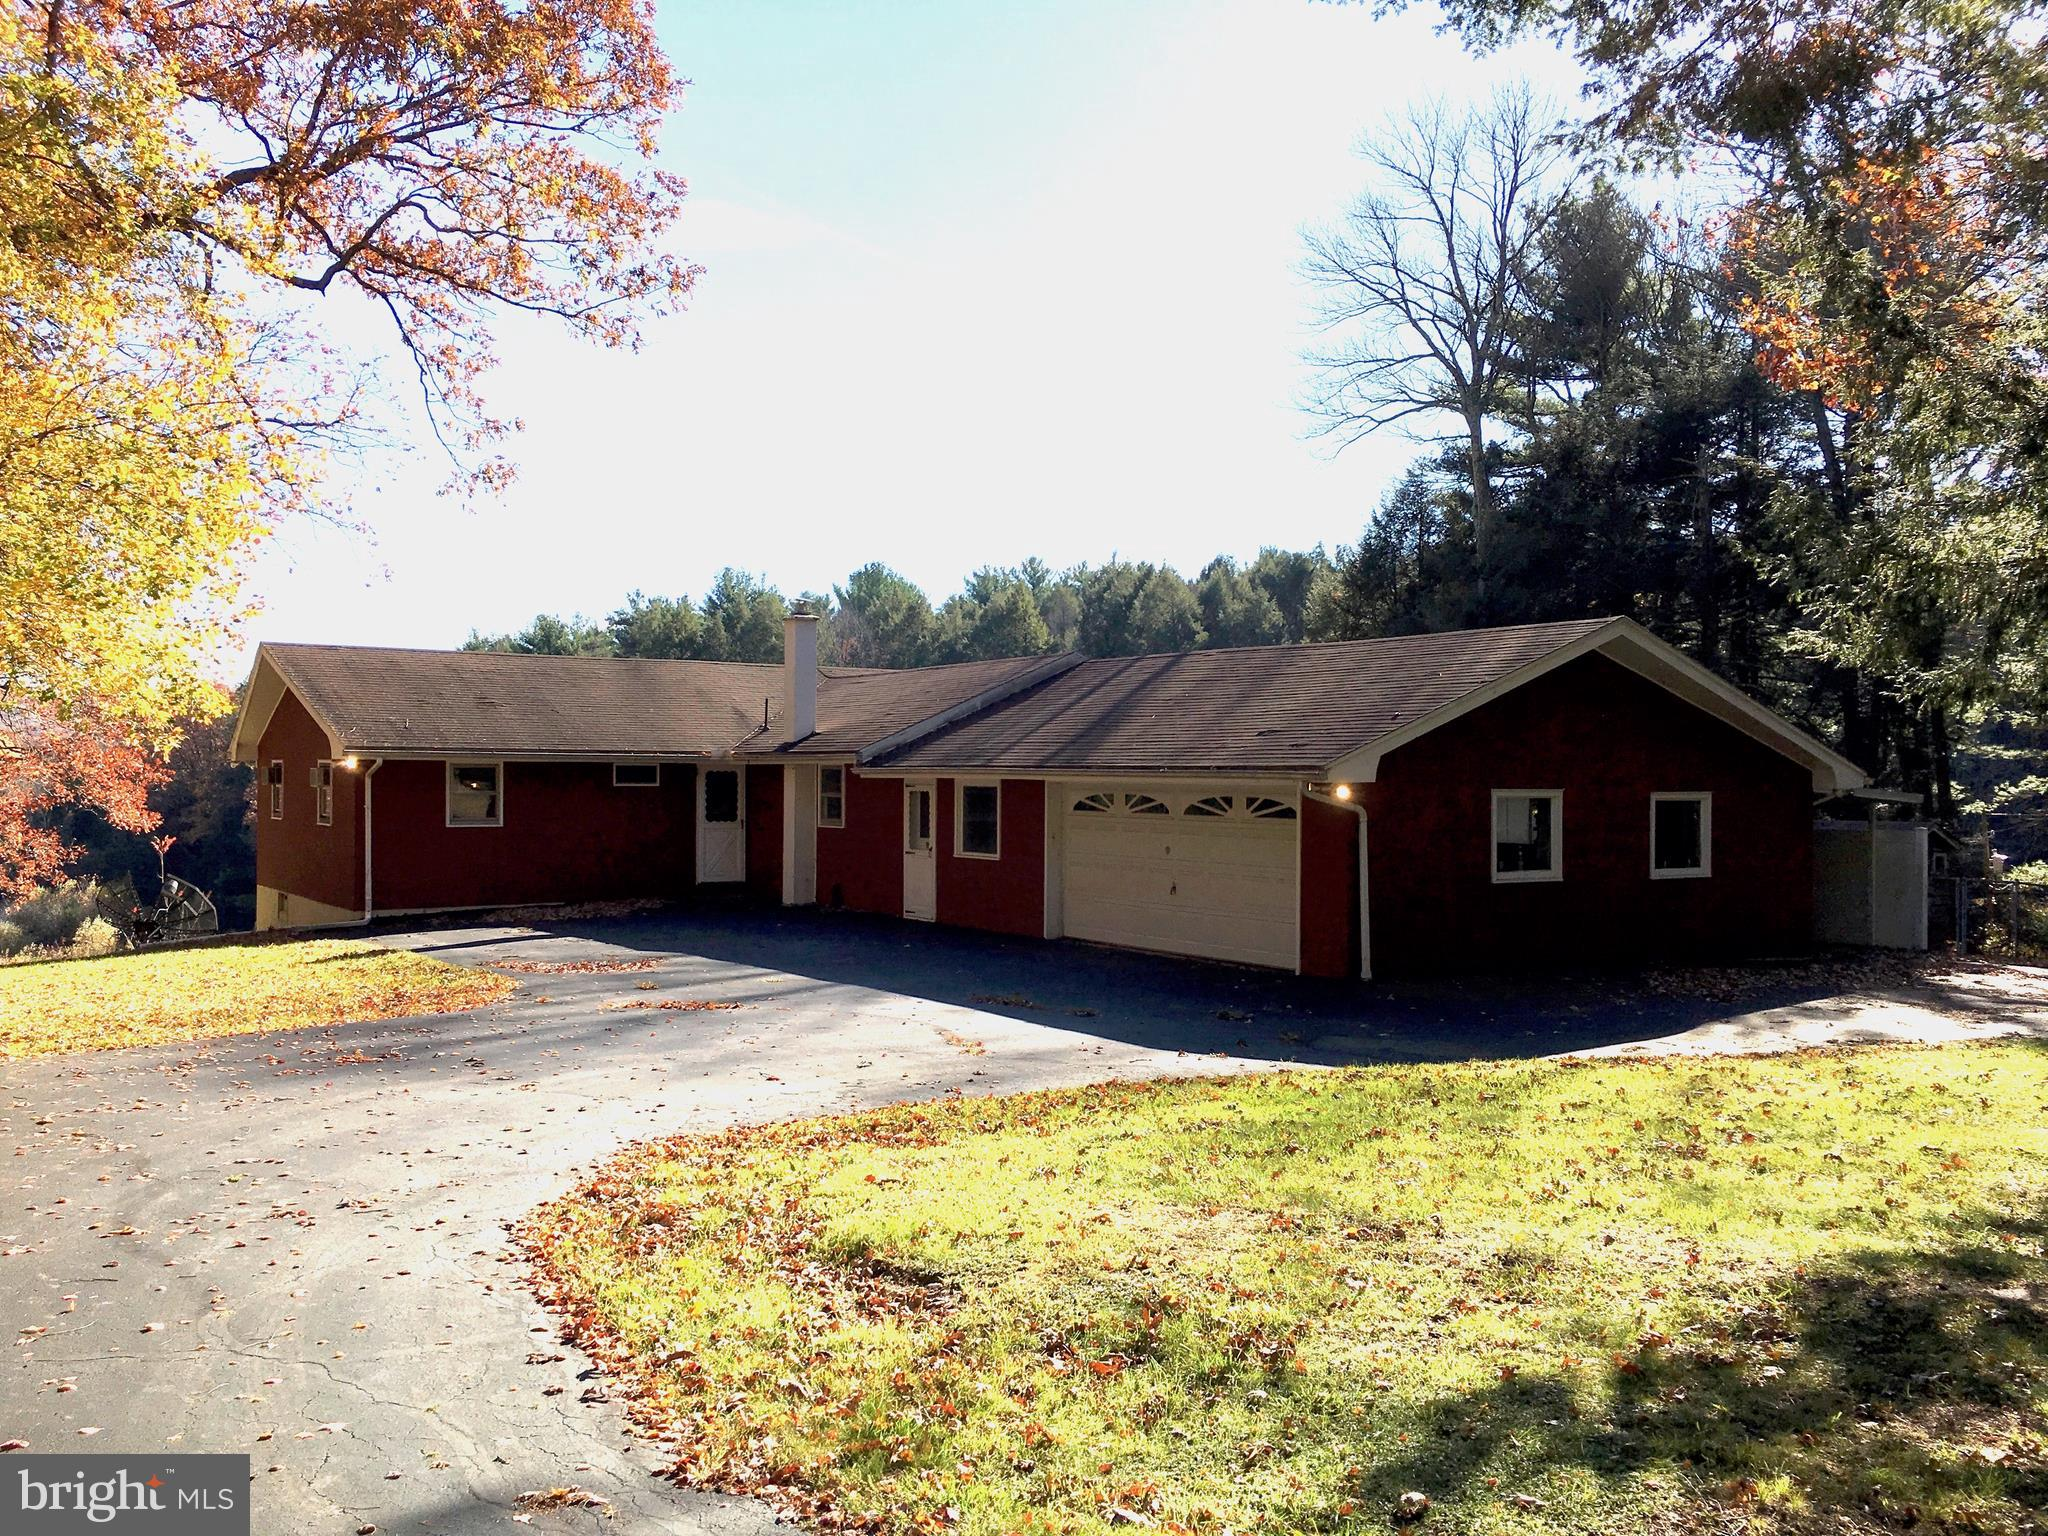 1286 PACKER DRIVE, WEATHERLY, PA 18255